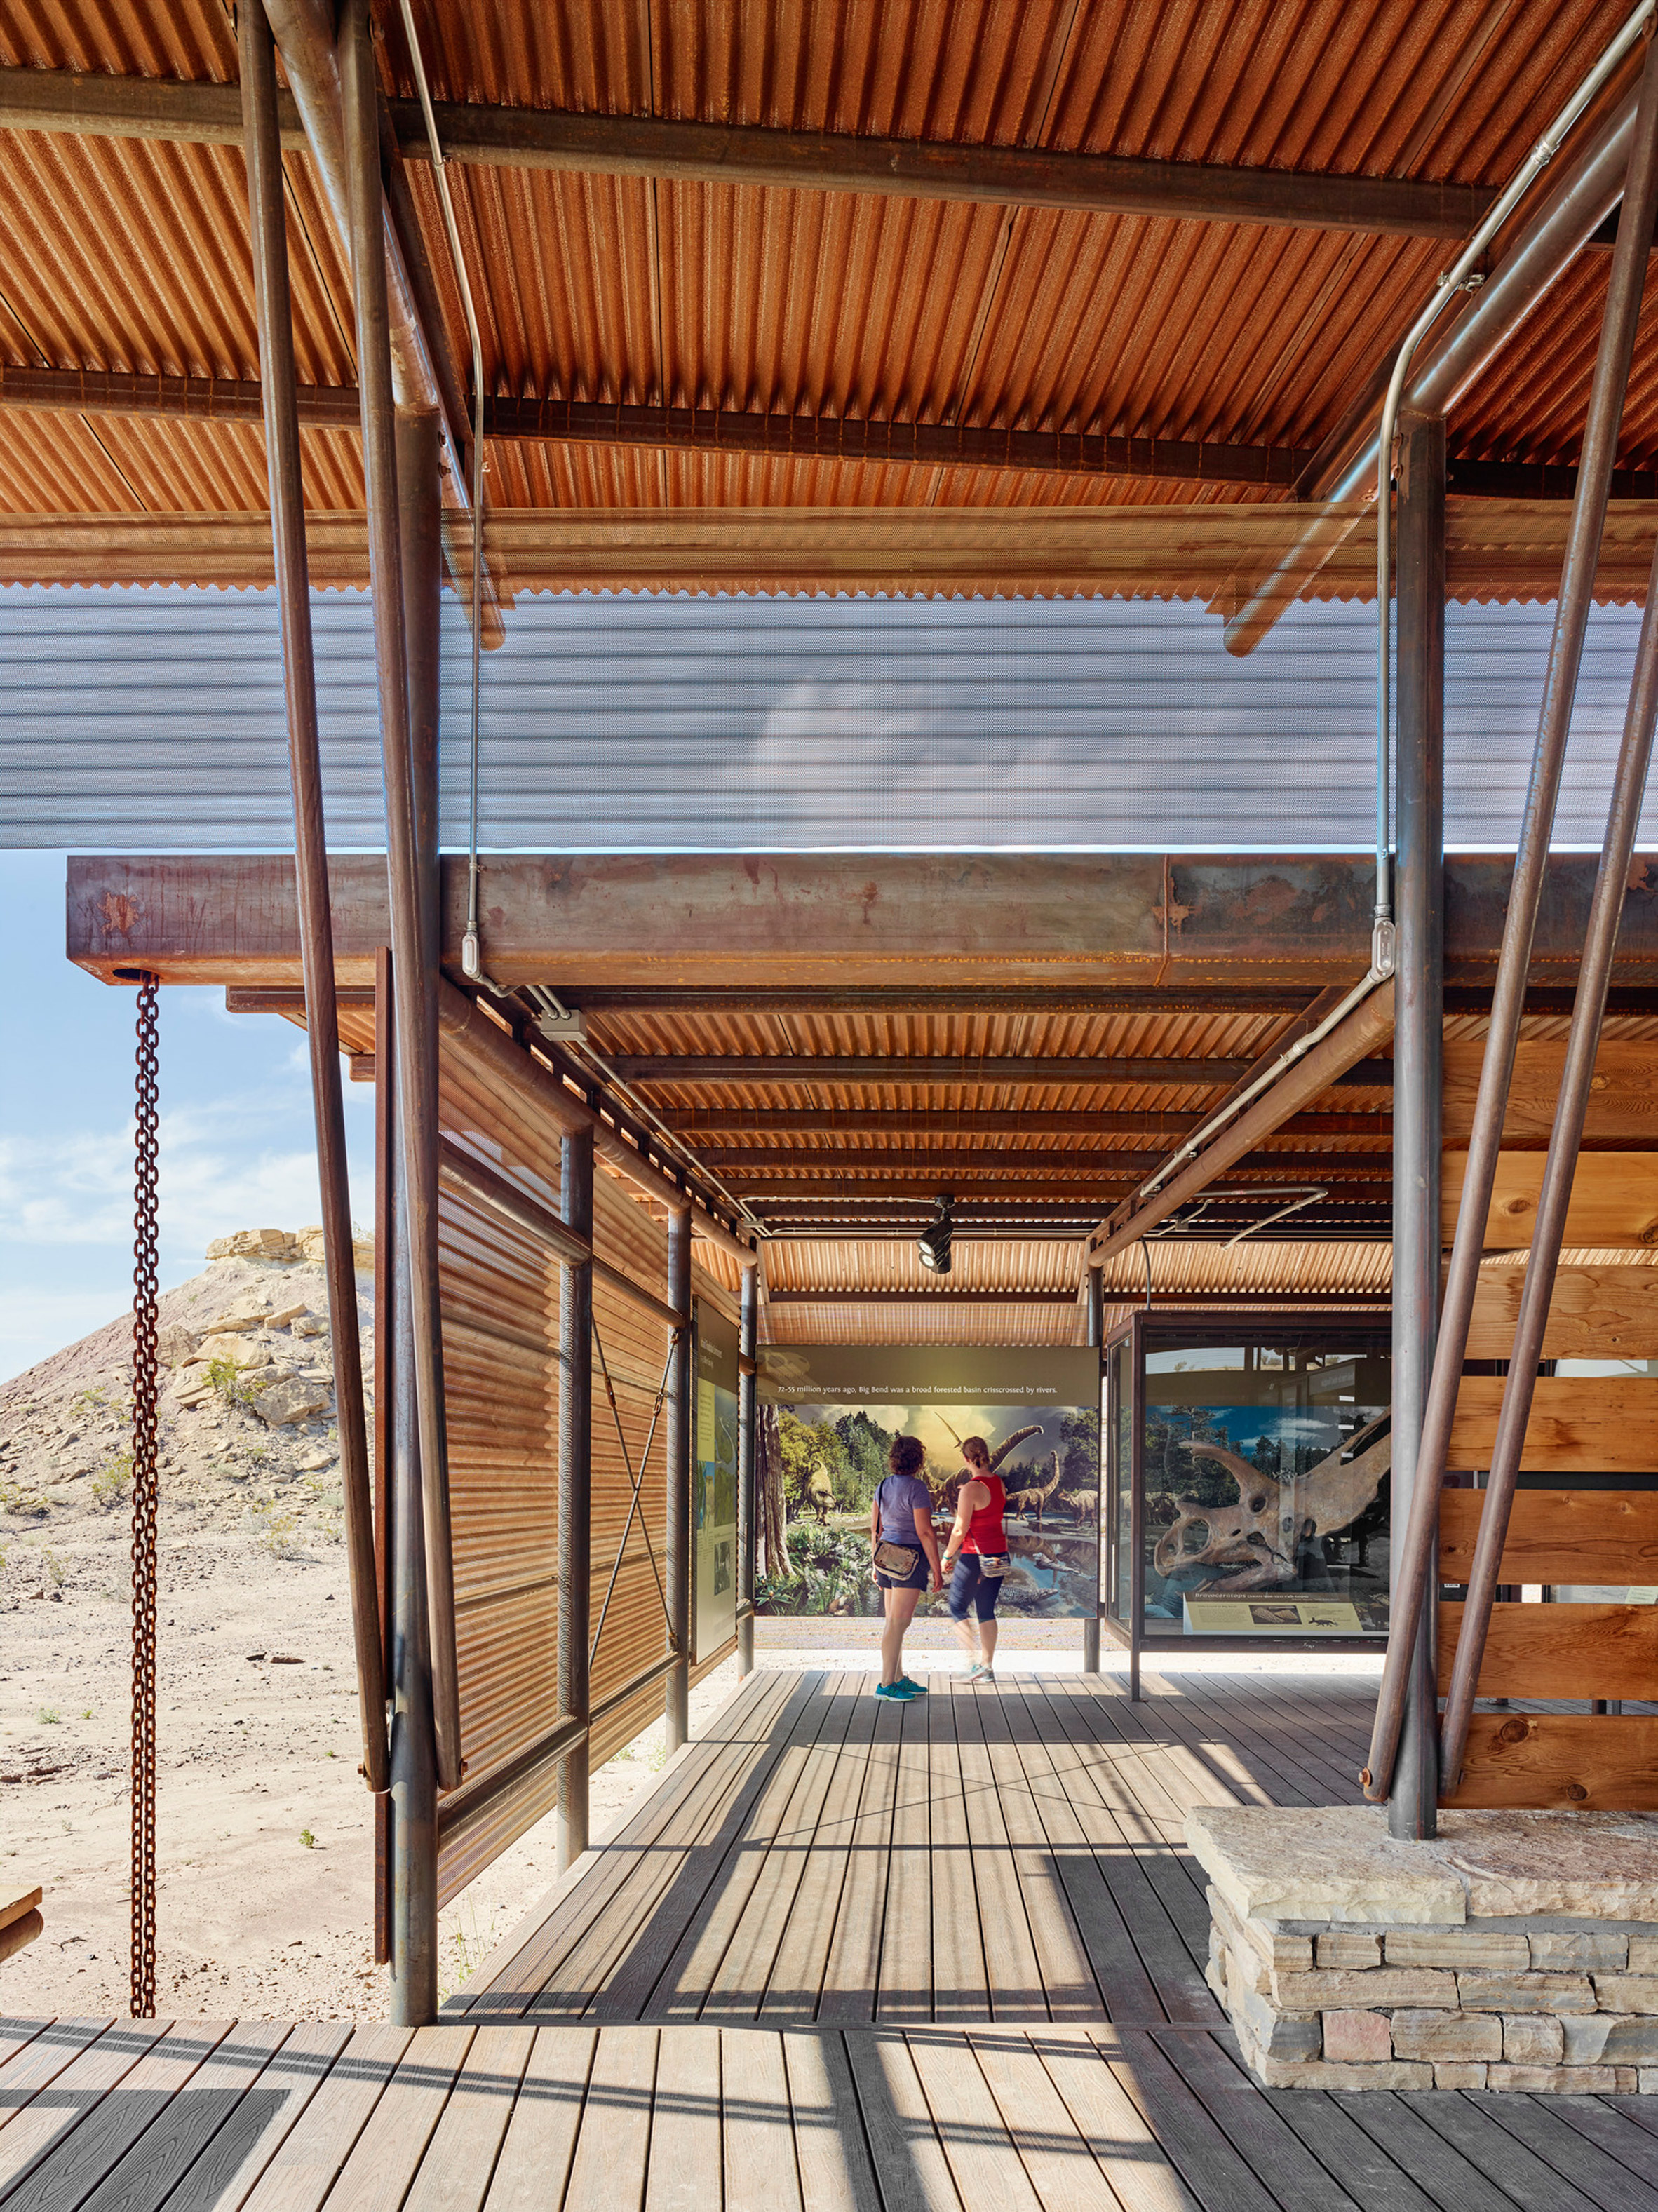 Dinosaur fossil park in Texas gains rust-coloured visitor centre by Lake Flato